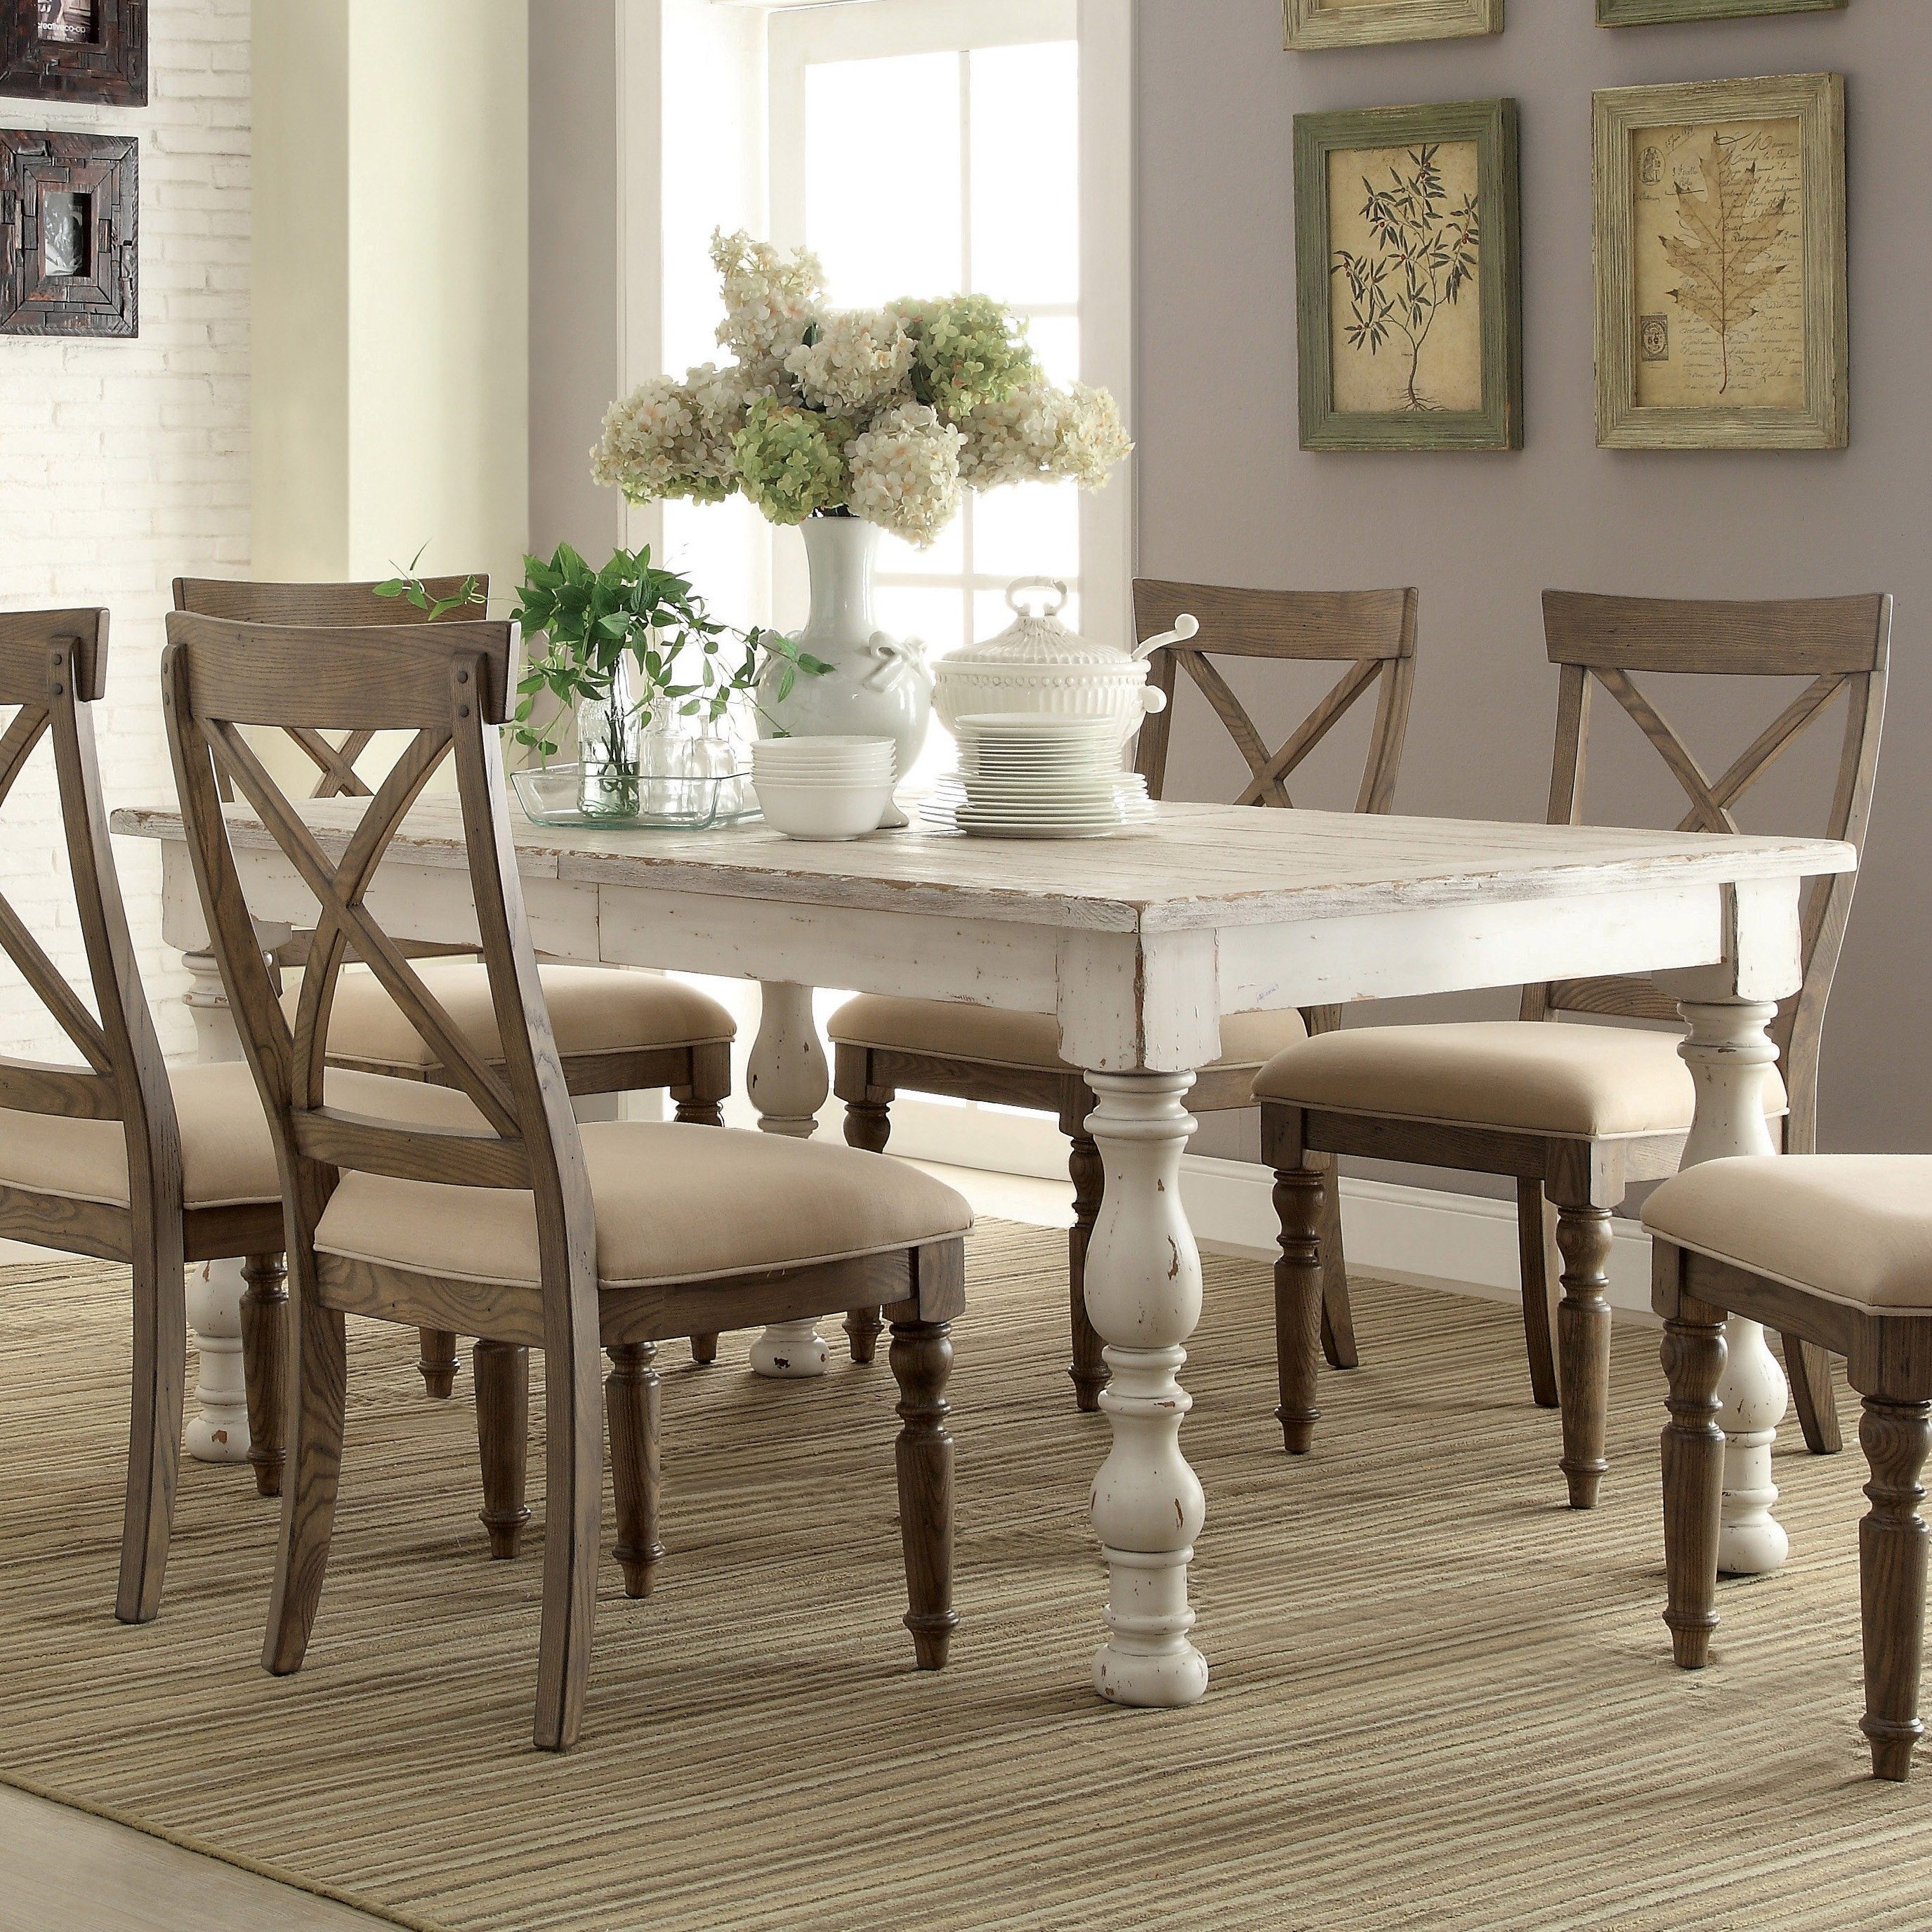 Aberdeen wood rectangular dining table and chairs in for Dining room table and chair sets